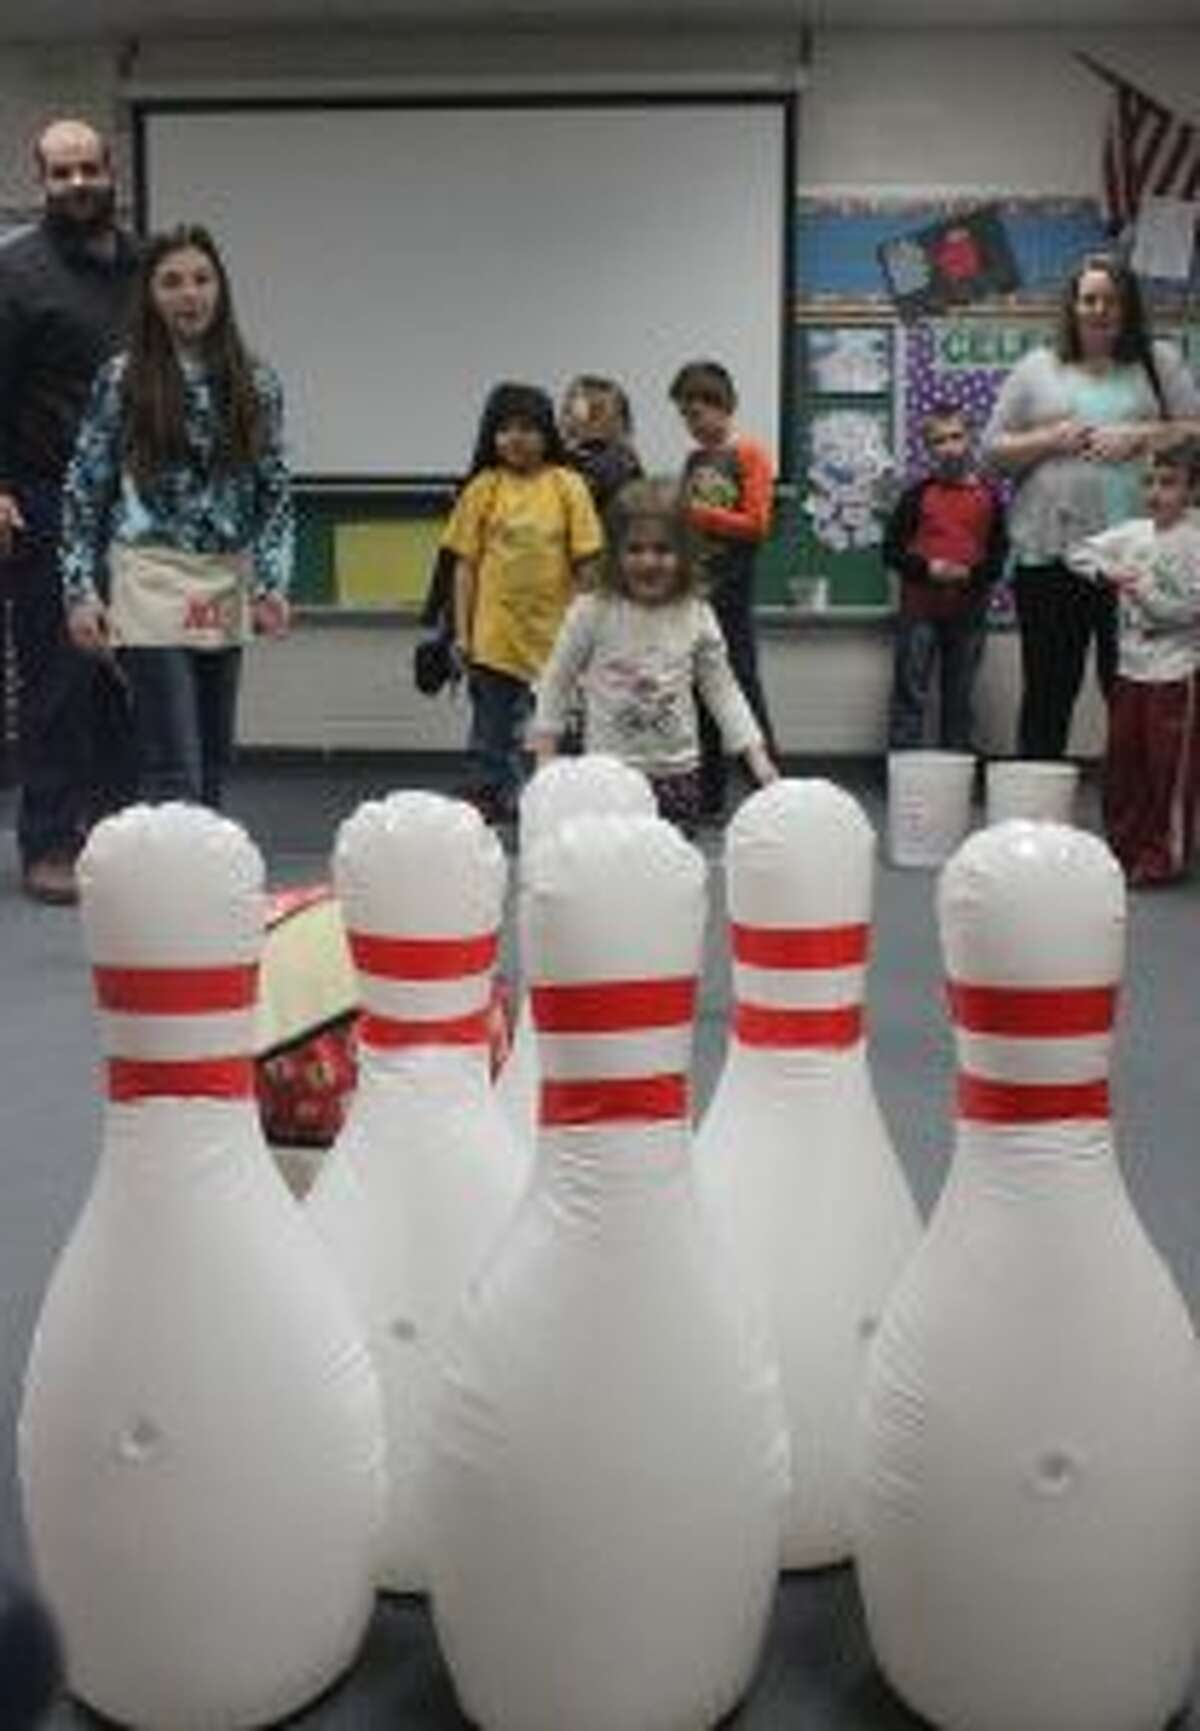 HAVING FUN: Smiles abounded at the many games at Crystal Lake Elementary's Winter Carnival.